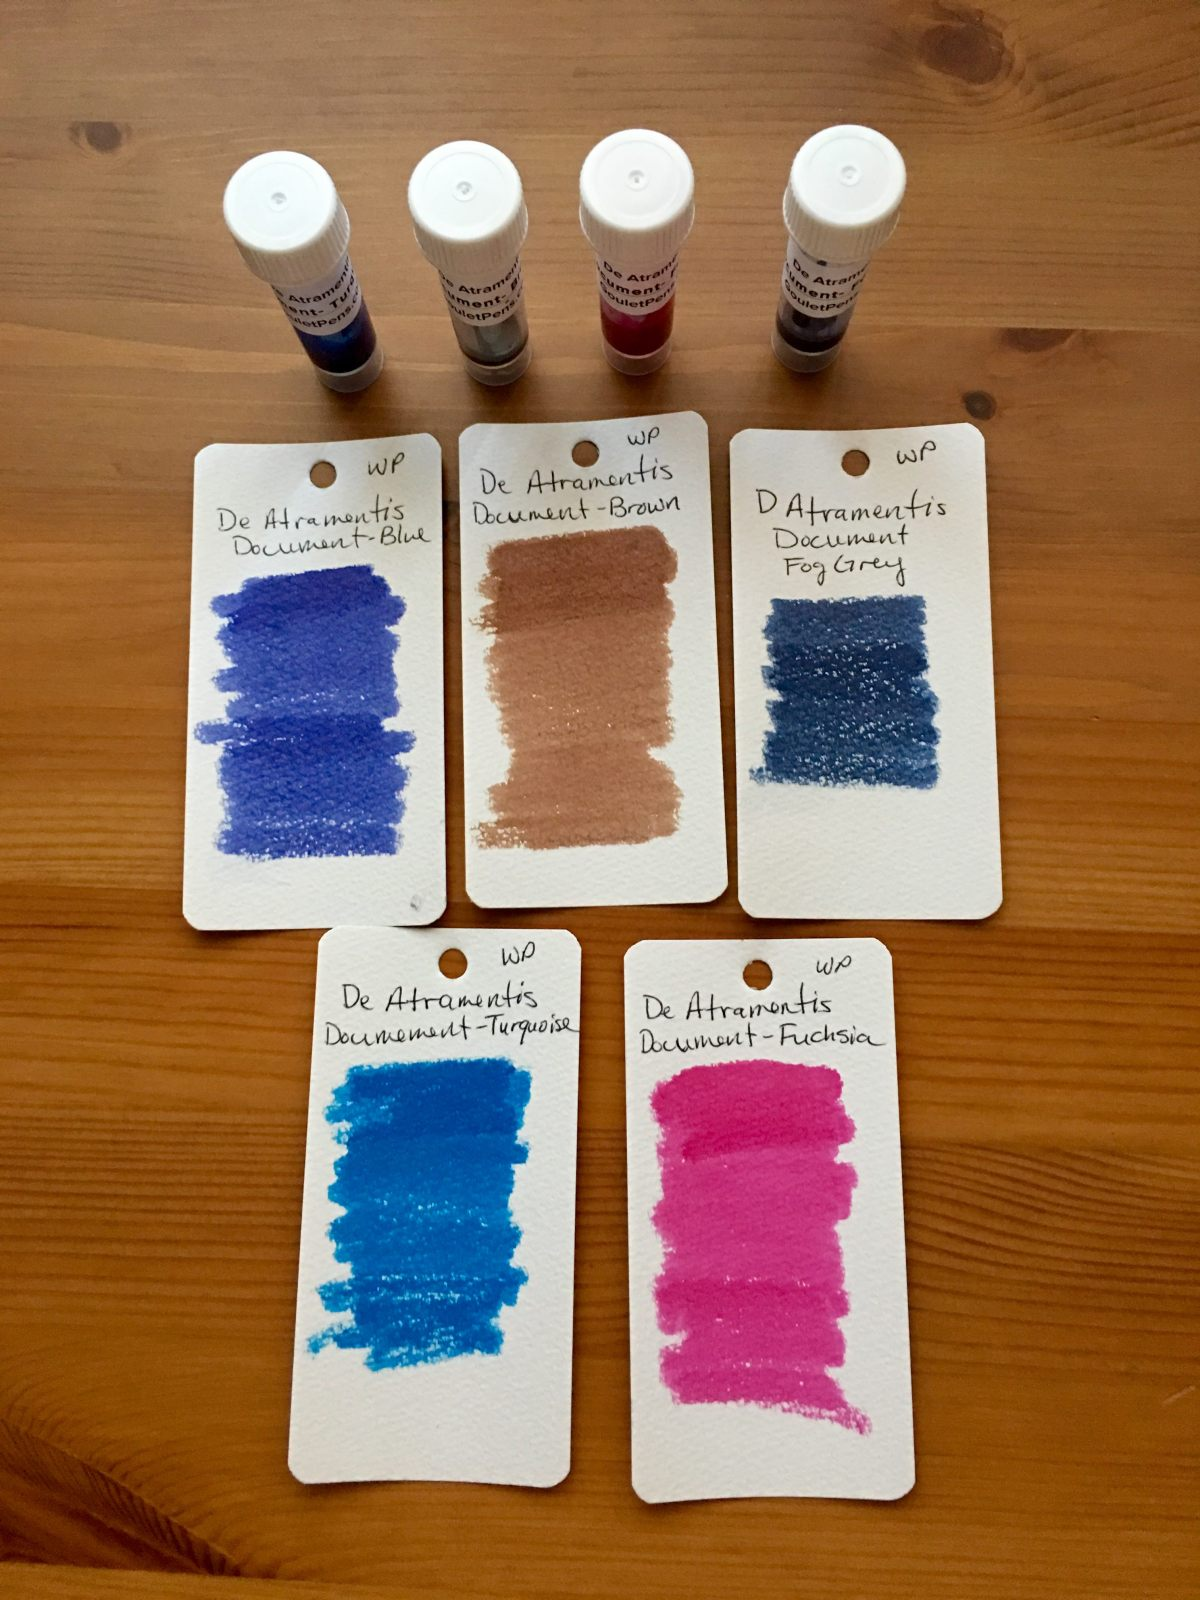 de atramentis document waterproof fountain pen ink swatch samples